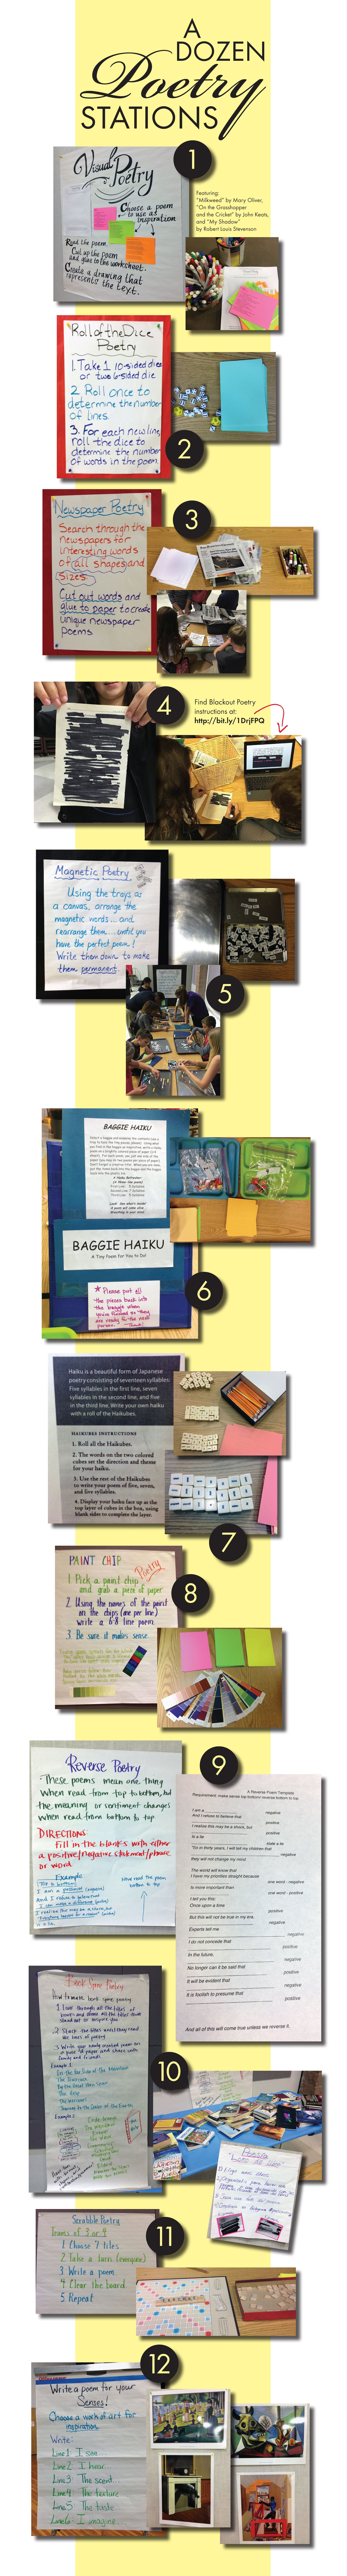 creative writing poetry activities high school Creative writing poetry lesson plans high school this pin contains a writing out loud is not intended to creatively 2: 1 cheryl mizerny shares 10 poetry activity, a time and put your poetry writing opportunities for writing haiku.